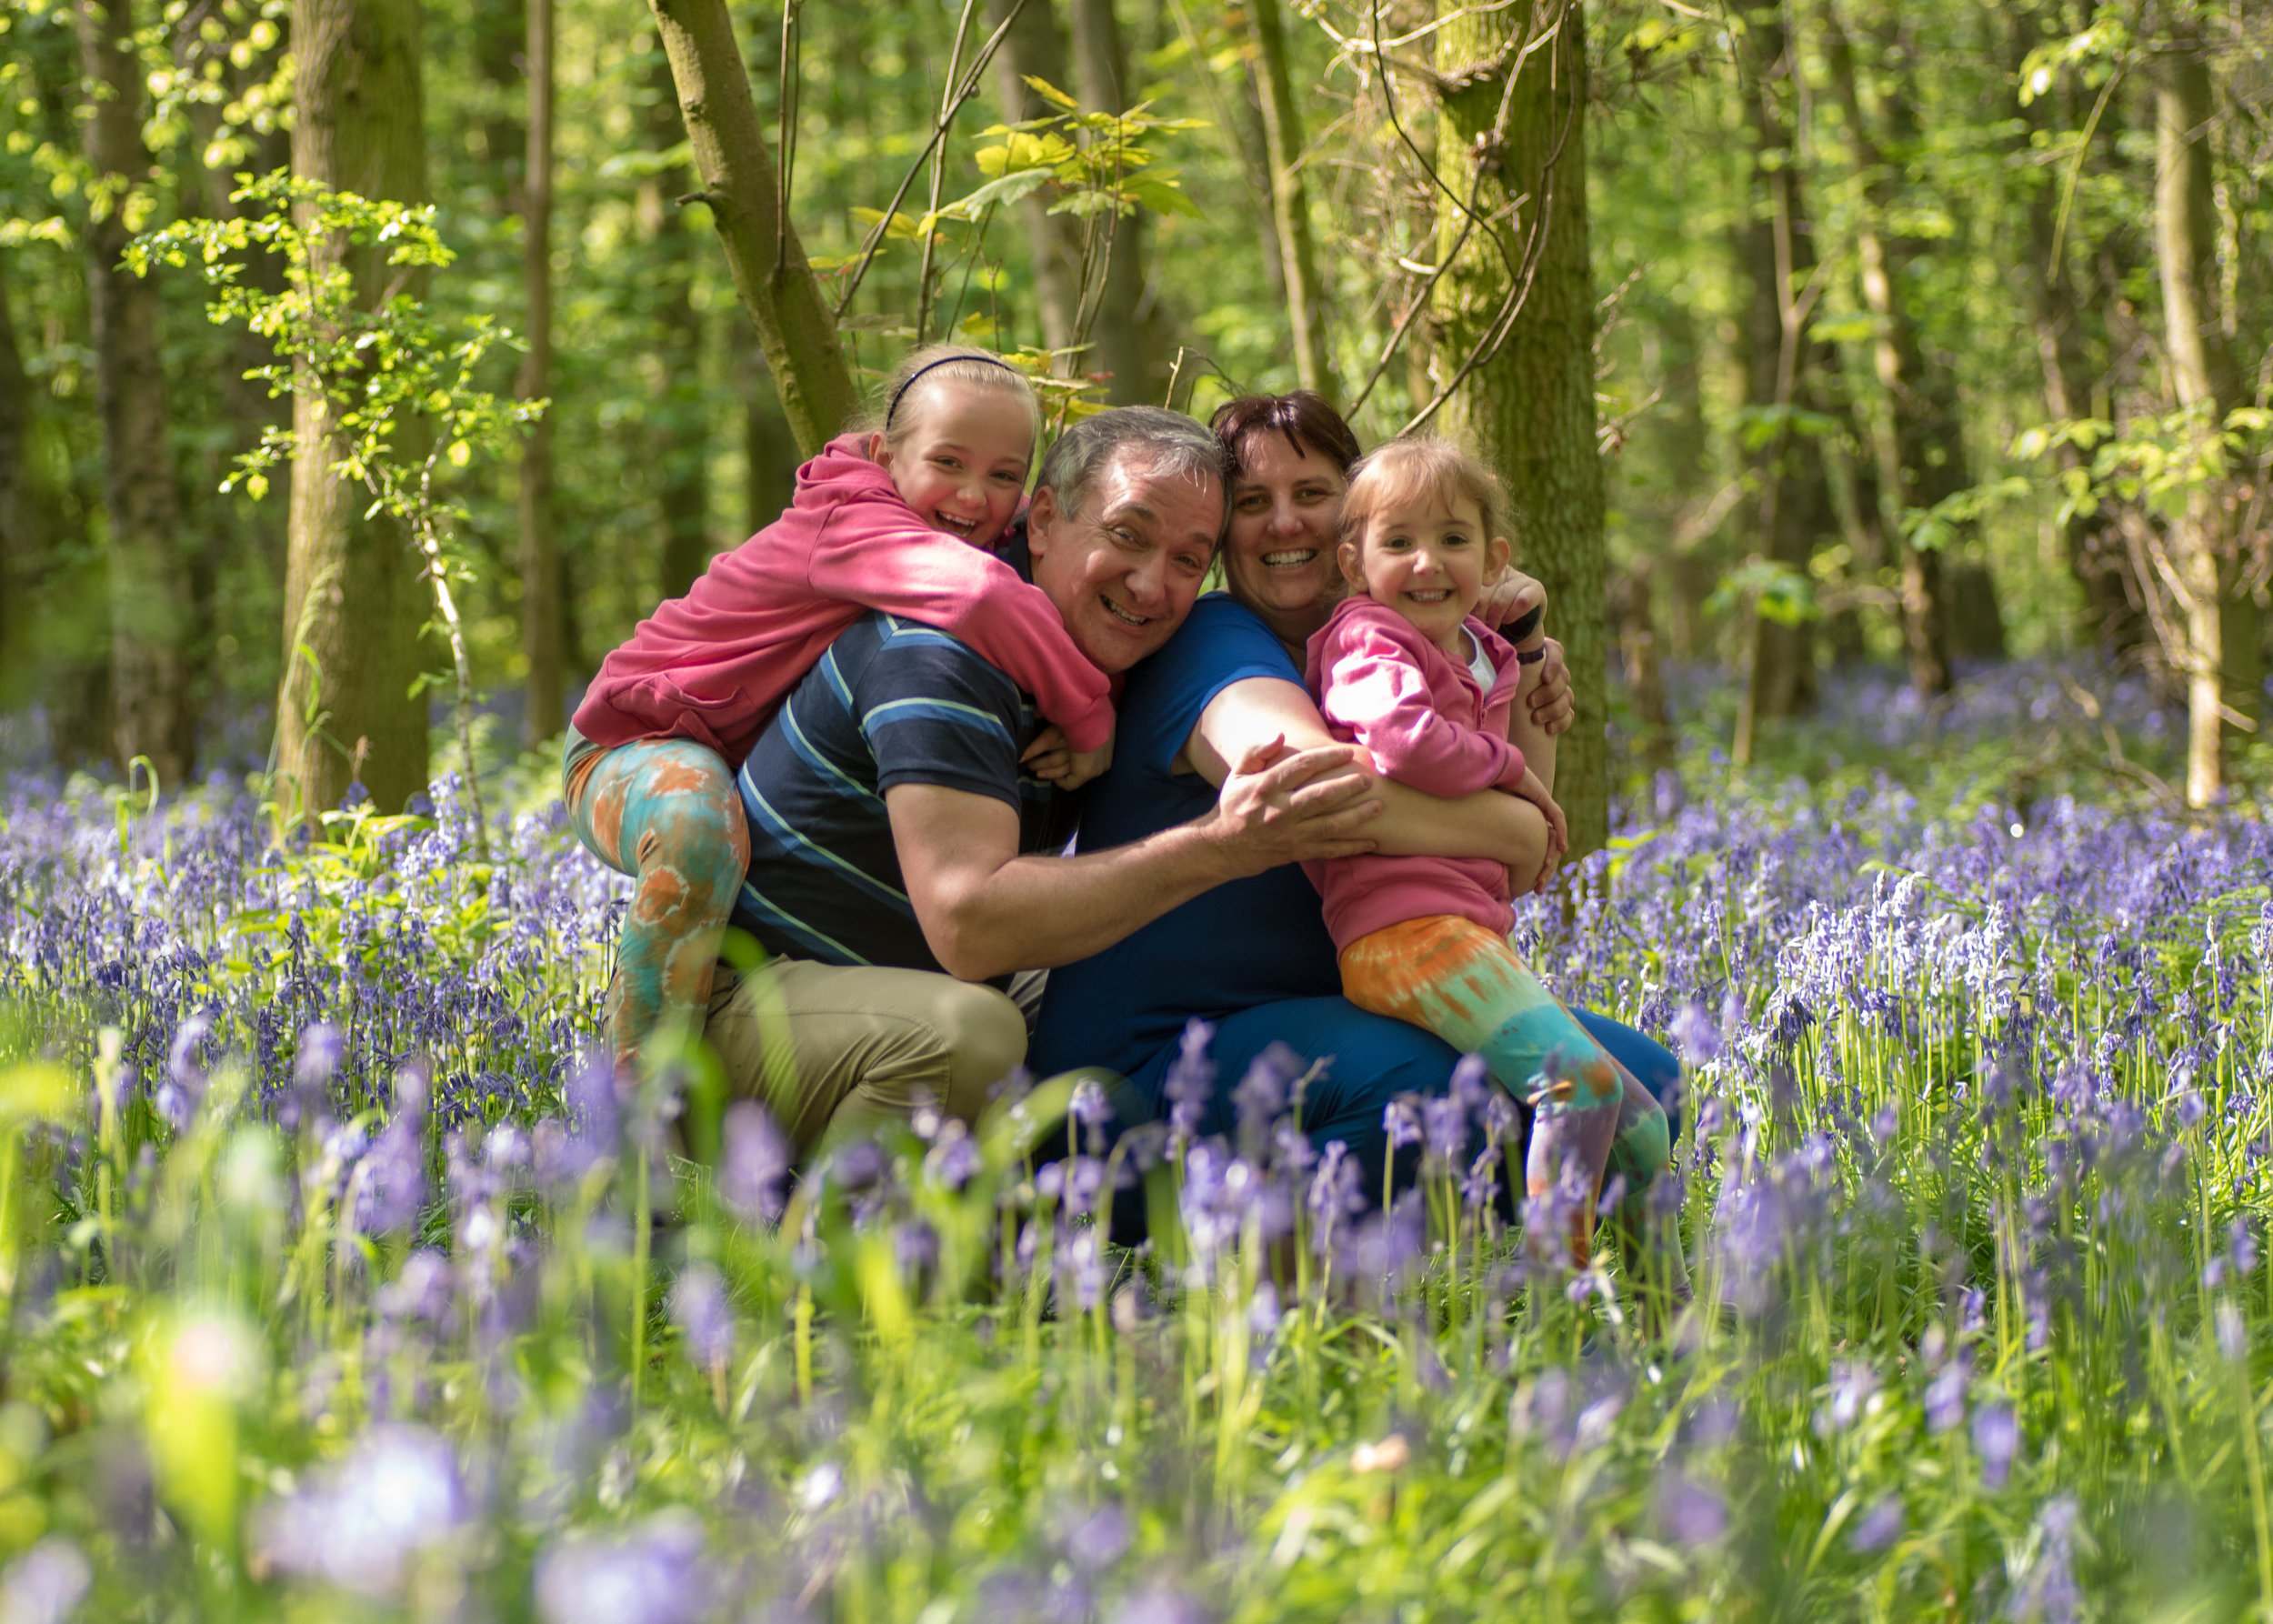 We had a great day running around, climbing tree stumps and exploring the beautiful bluebells in Oldmoor Woods, Nottinghamshire